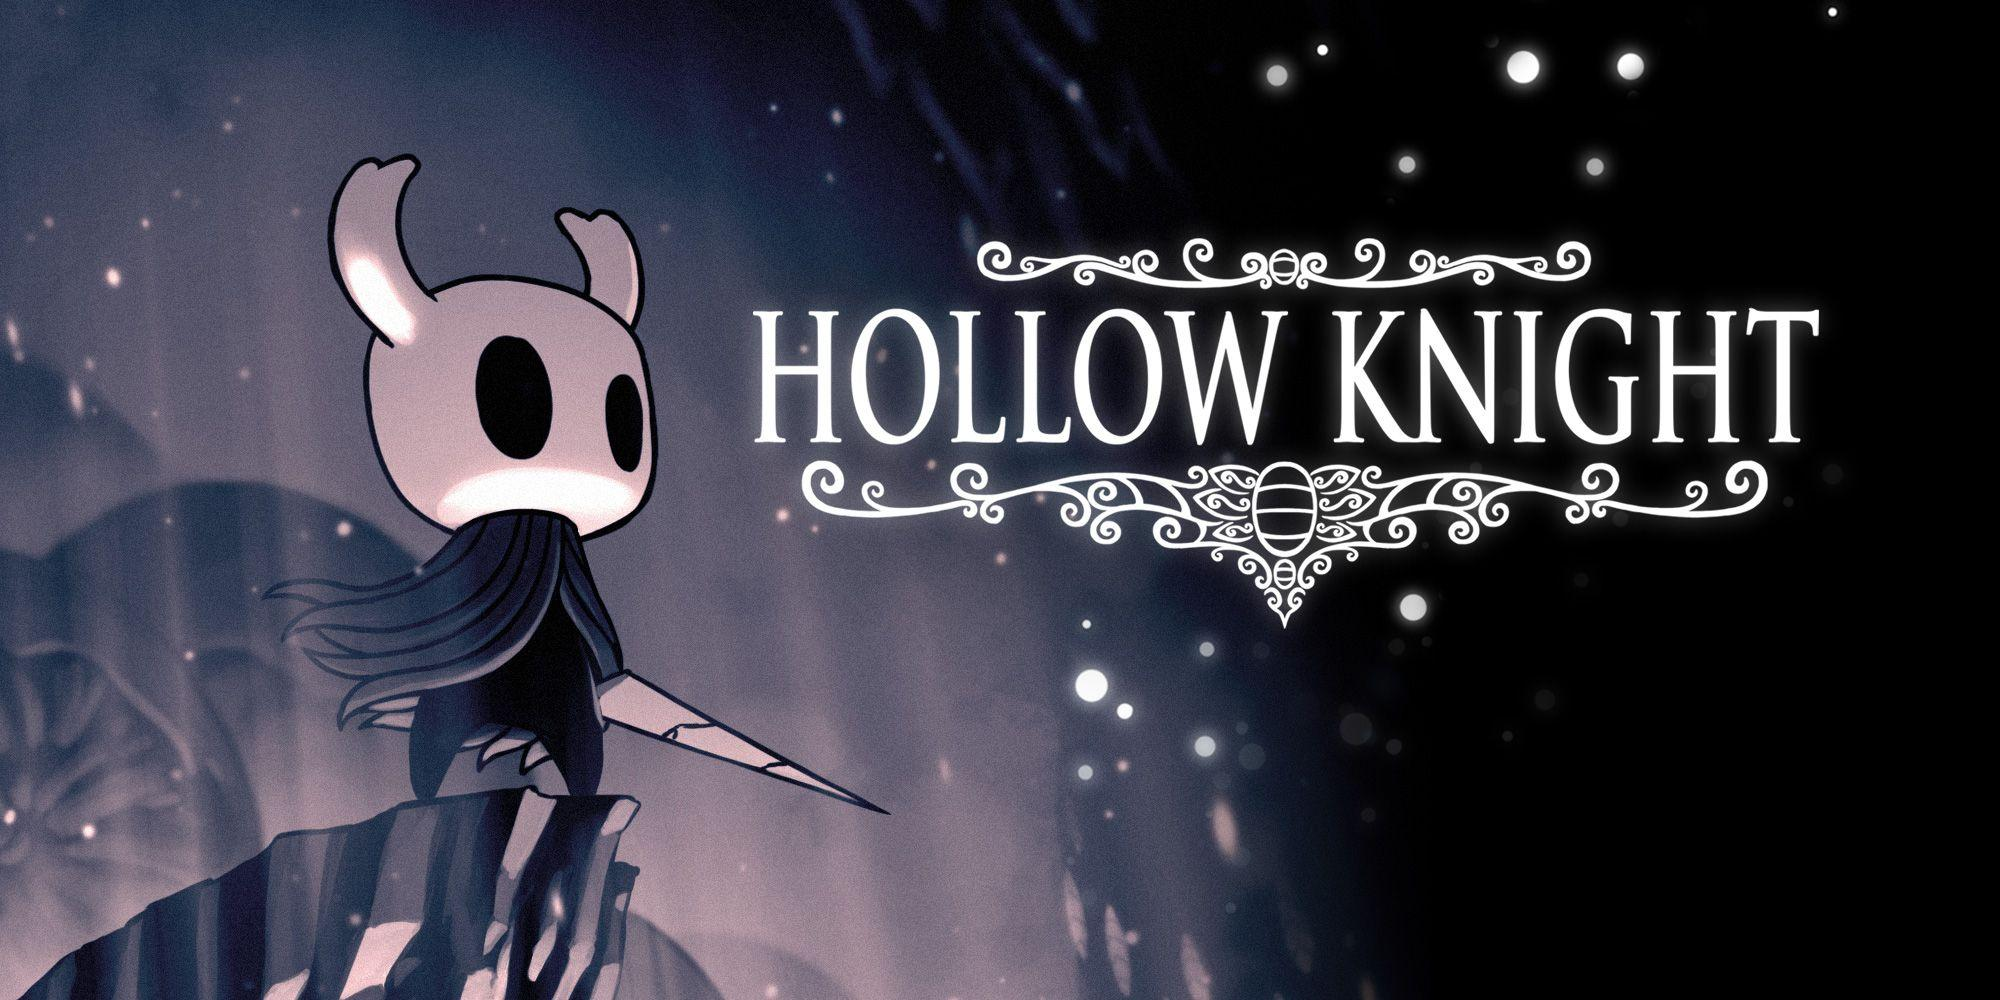 Hollow Knight HD Wallpapers 12